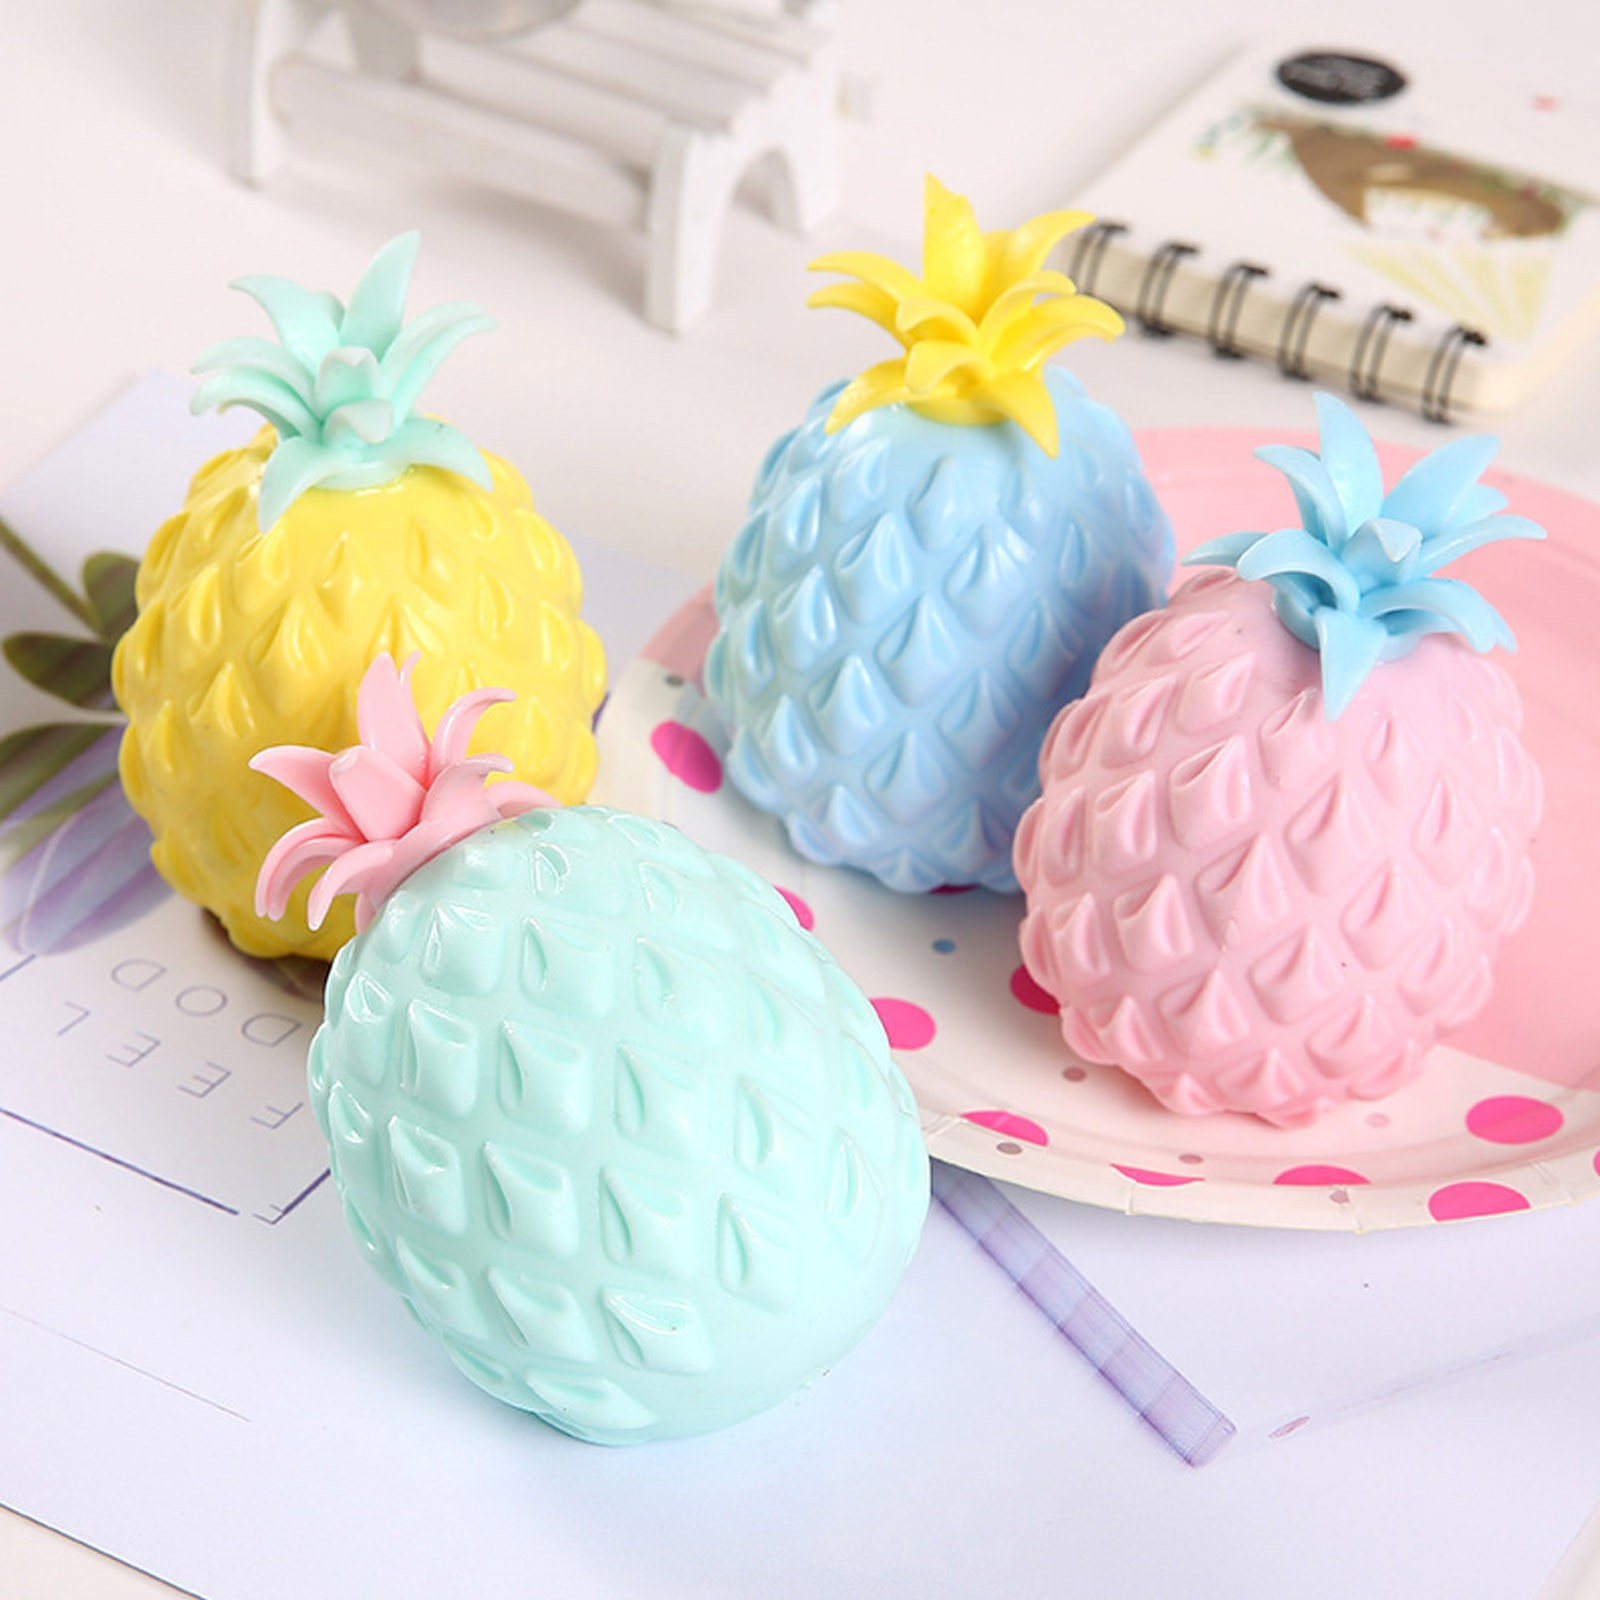 Novel Simulation Pineapple Decompression Toy Adult Children's Fidget Toys Office Pressure Release Toy ?????????? ??? ??? img4